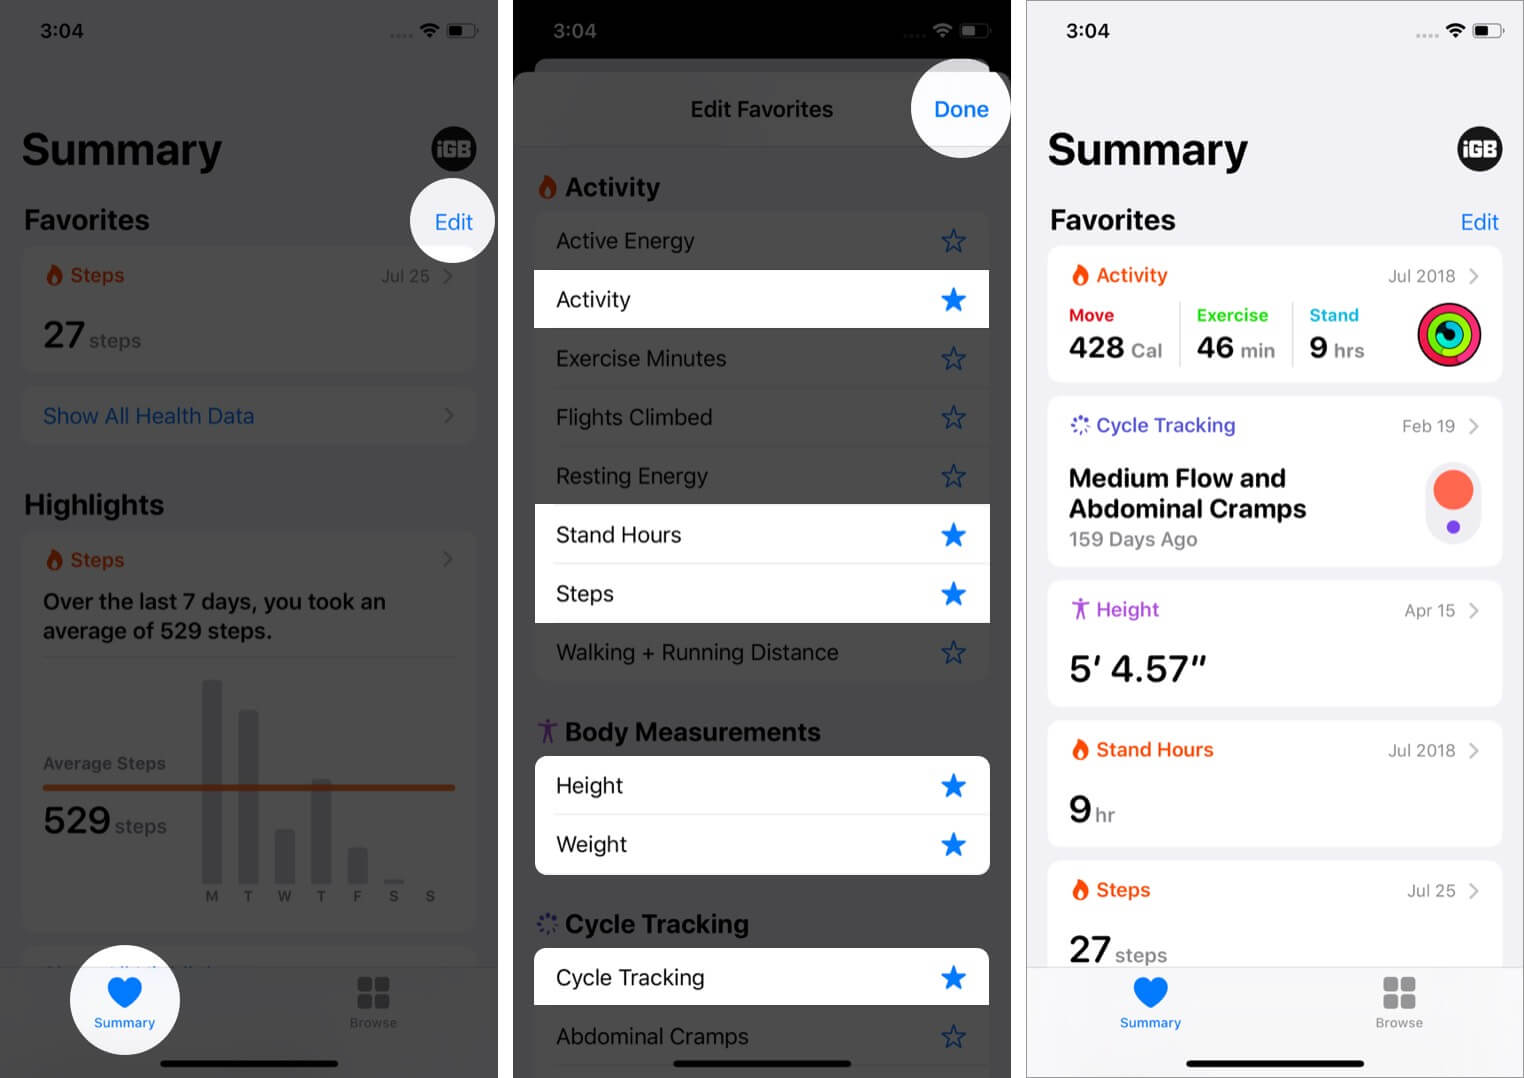 edit favorites to see relevant data at one place on iphone